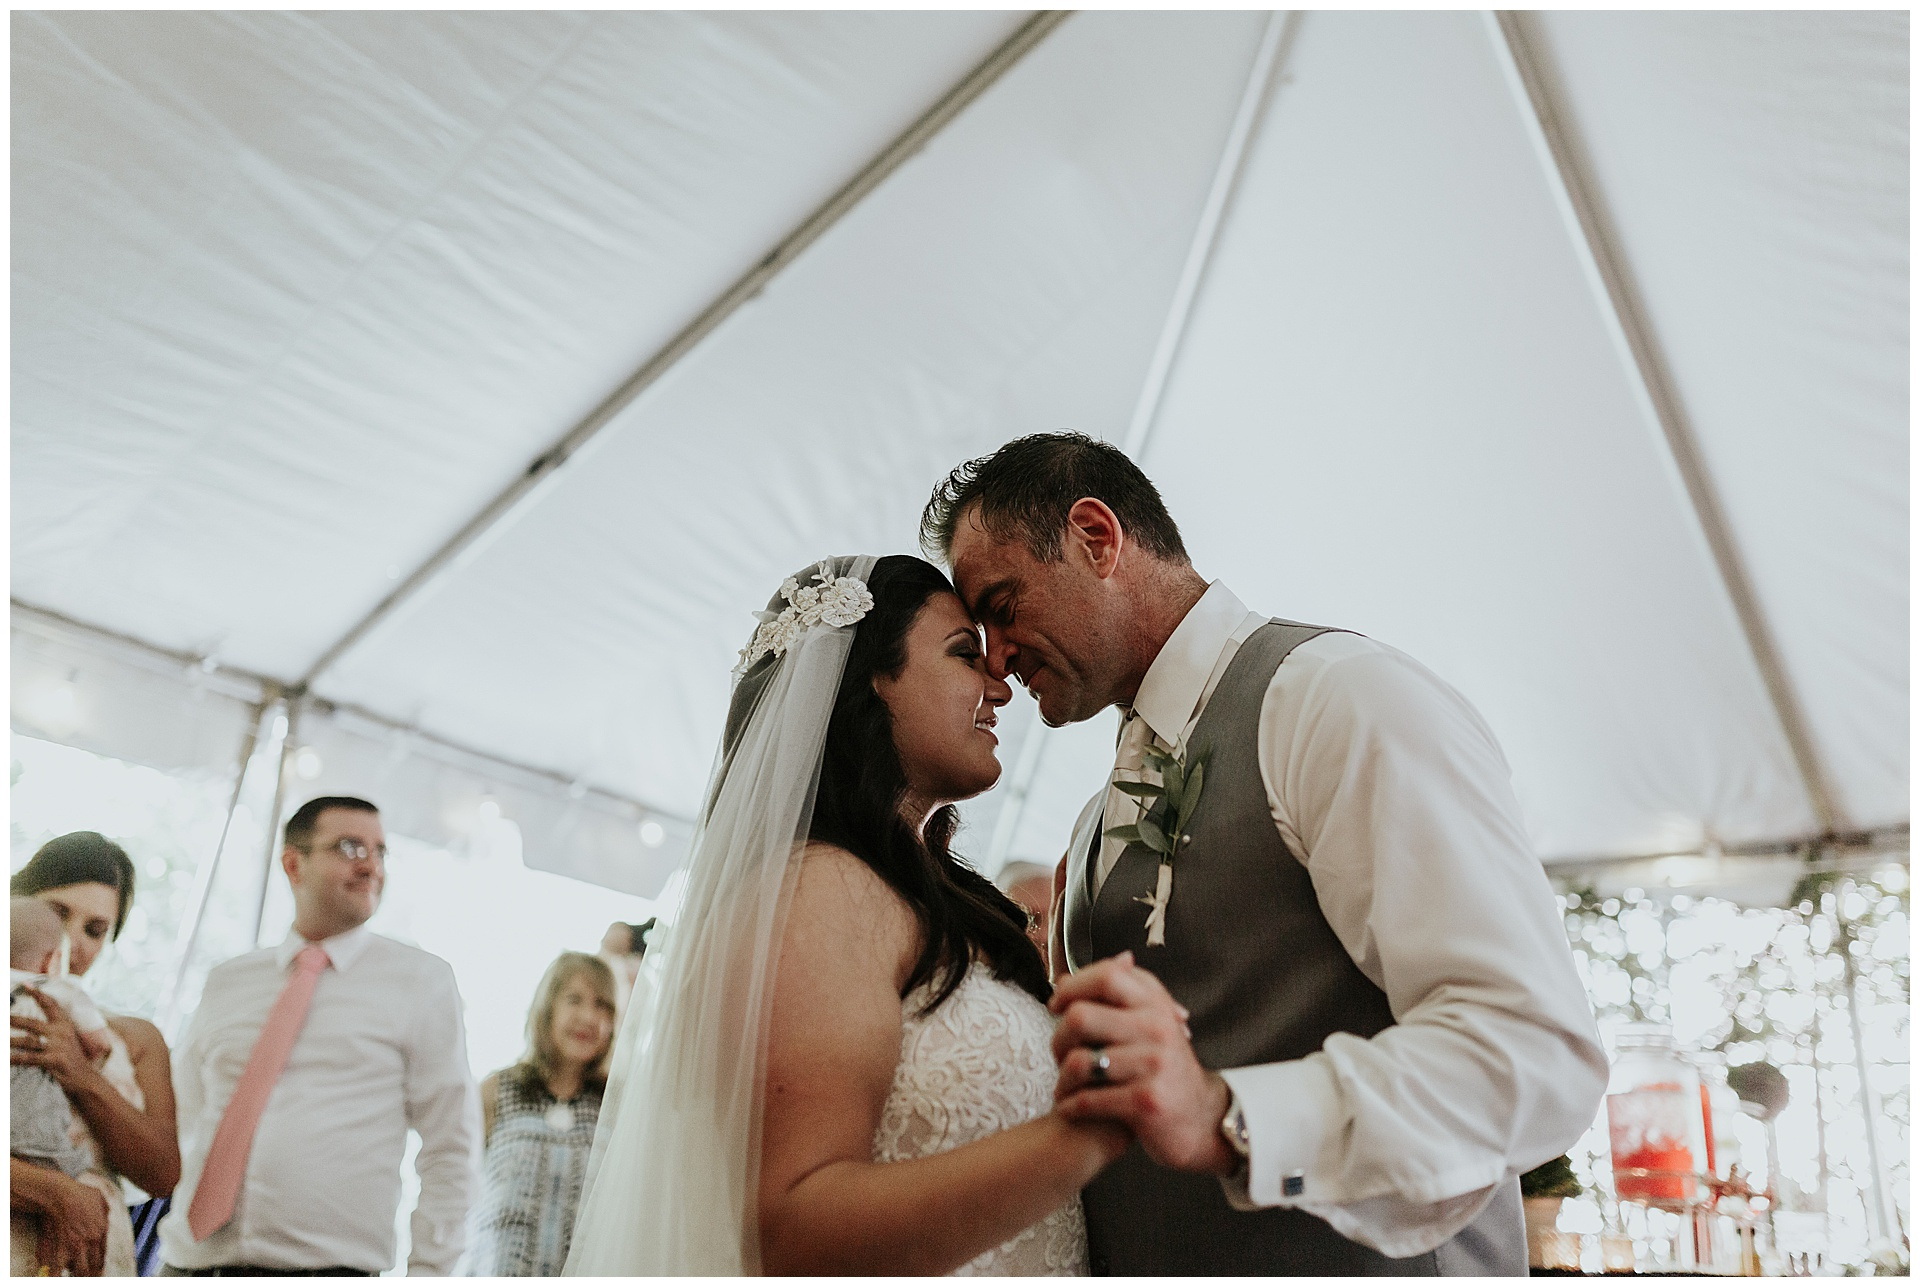 kelton house wedding columbus ohio_mia dimare photo56.jpg